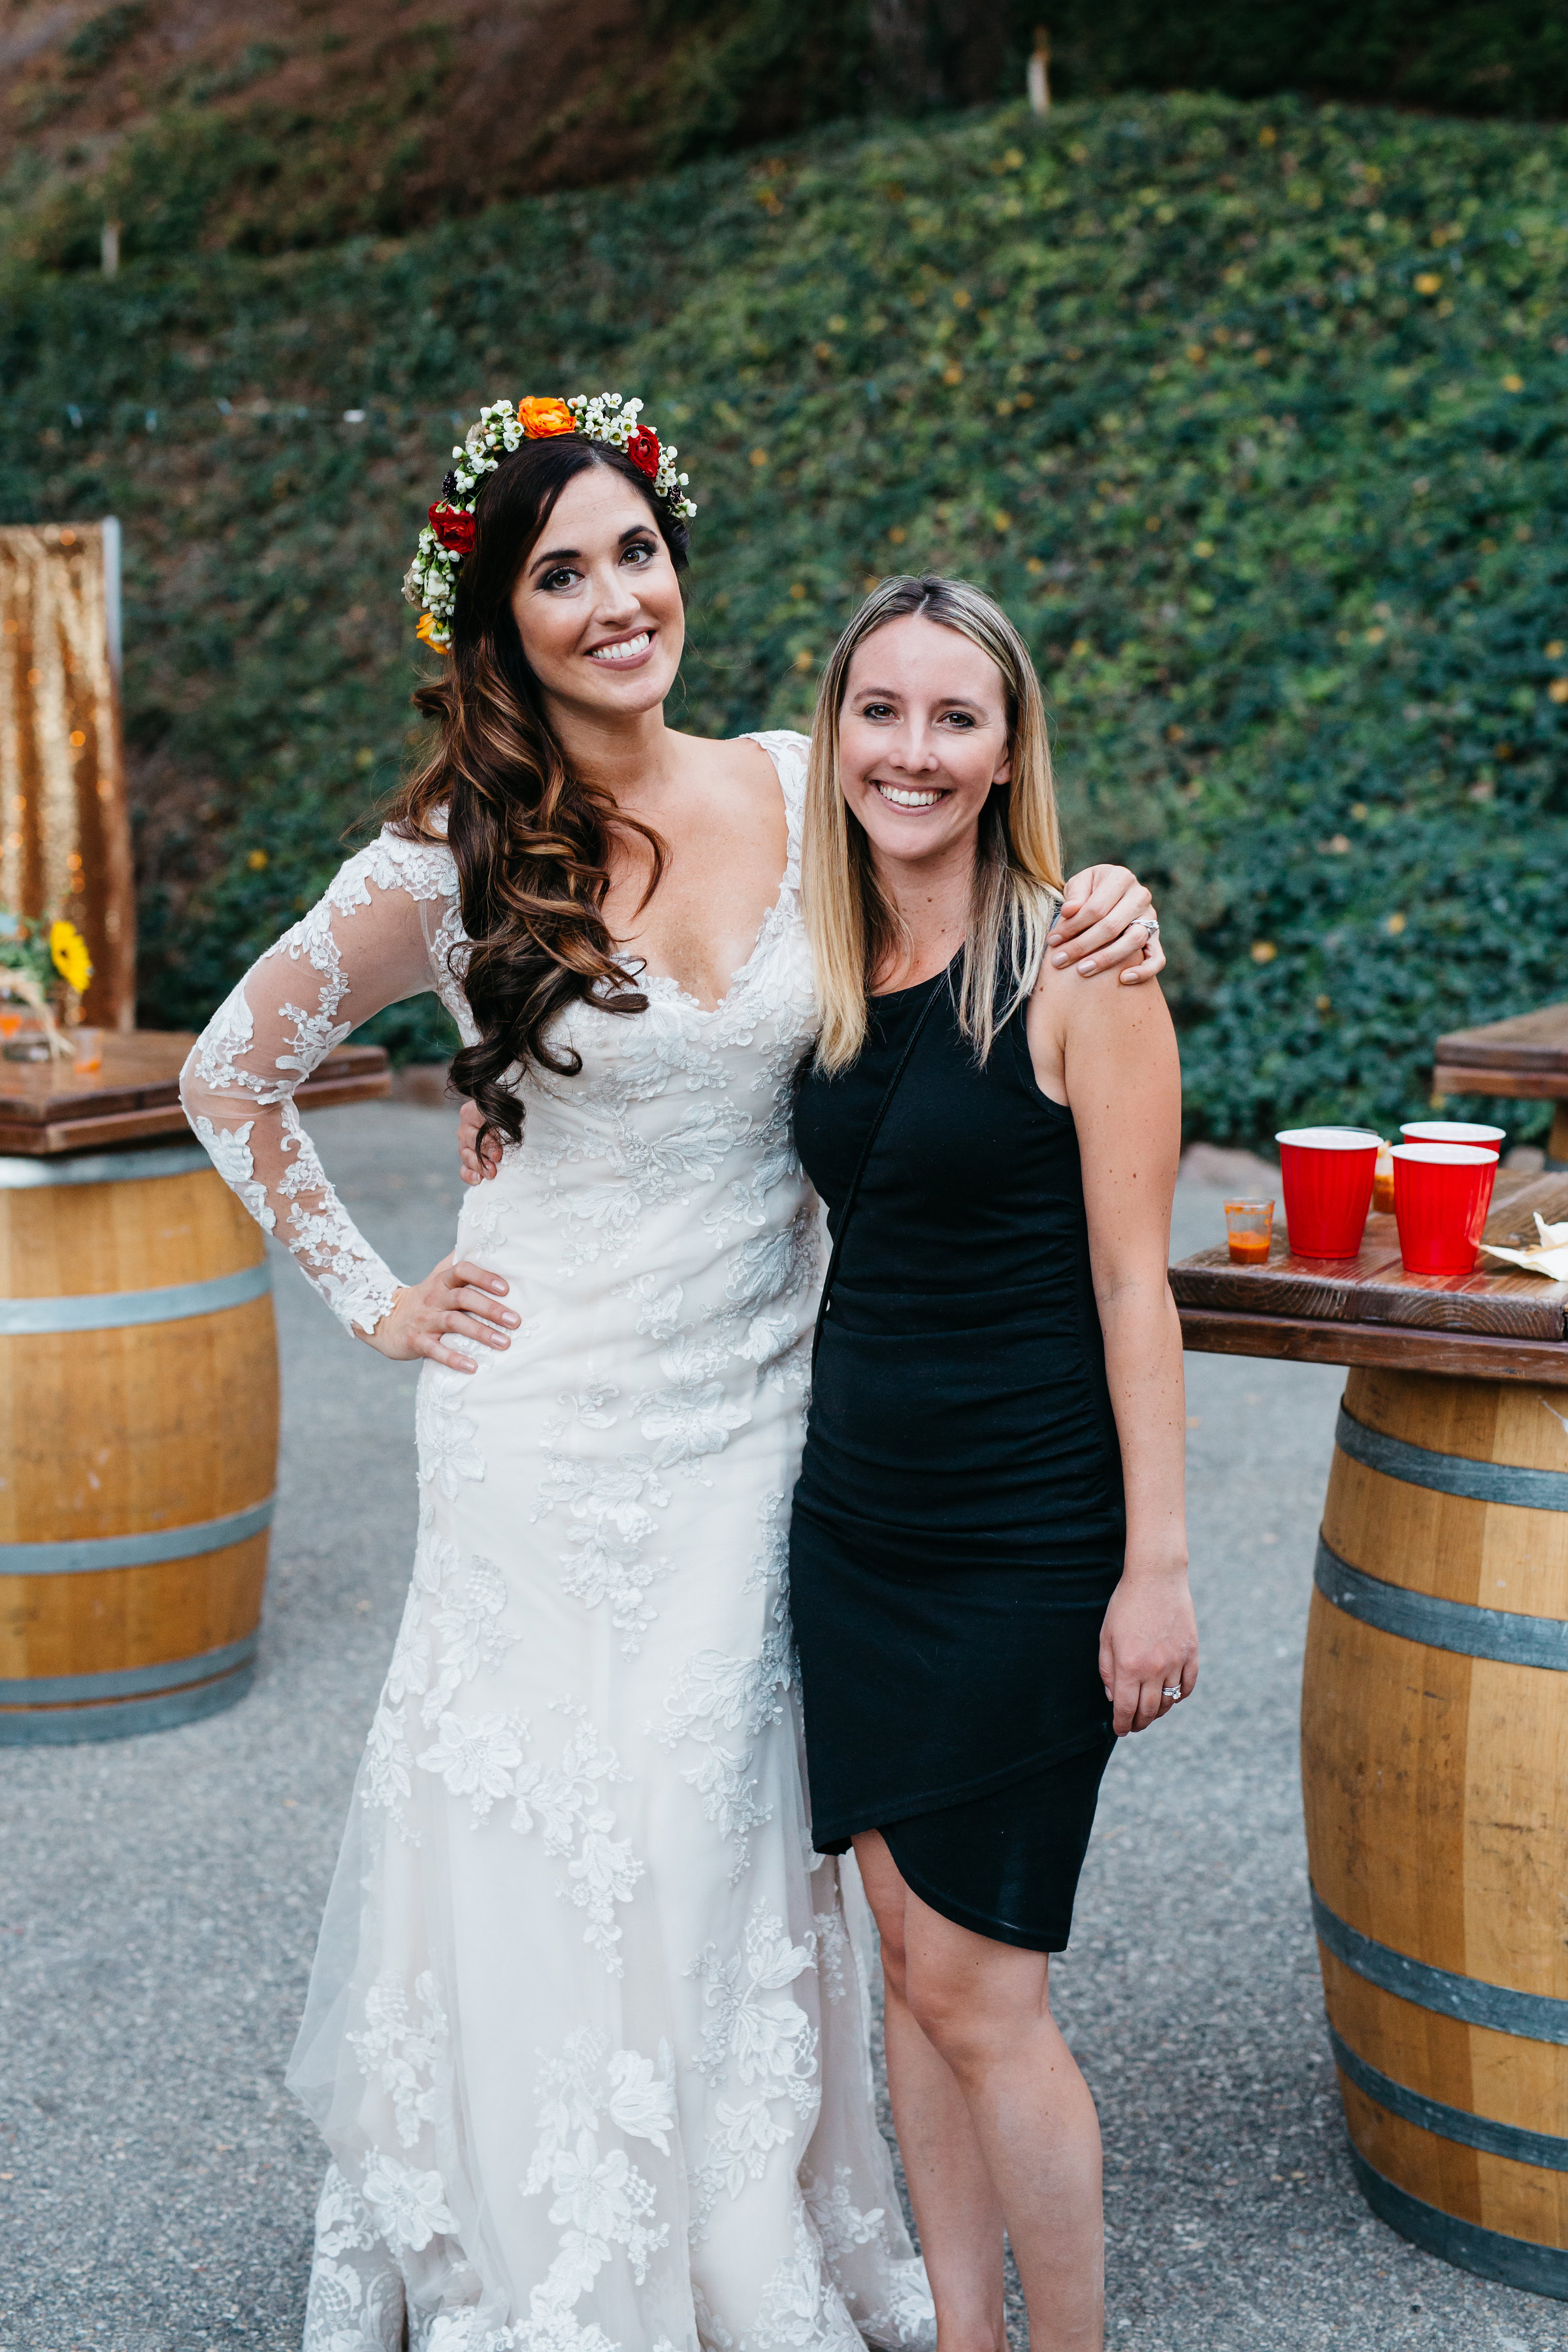 RachelandMike_Reception7.jpg